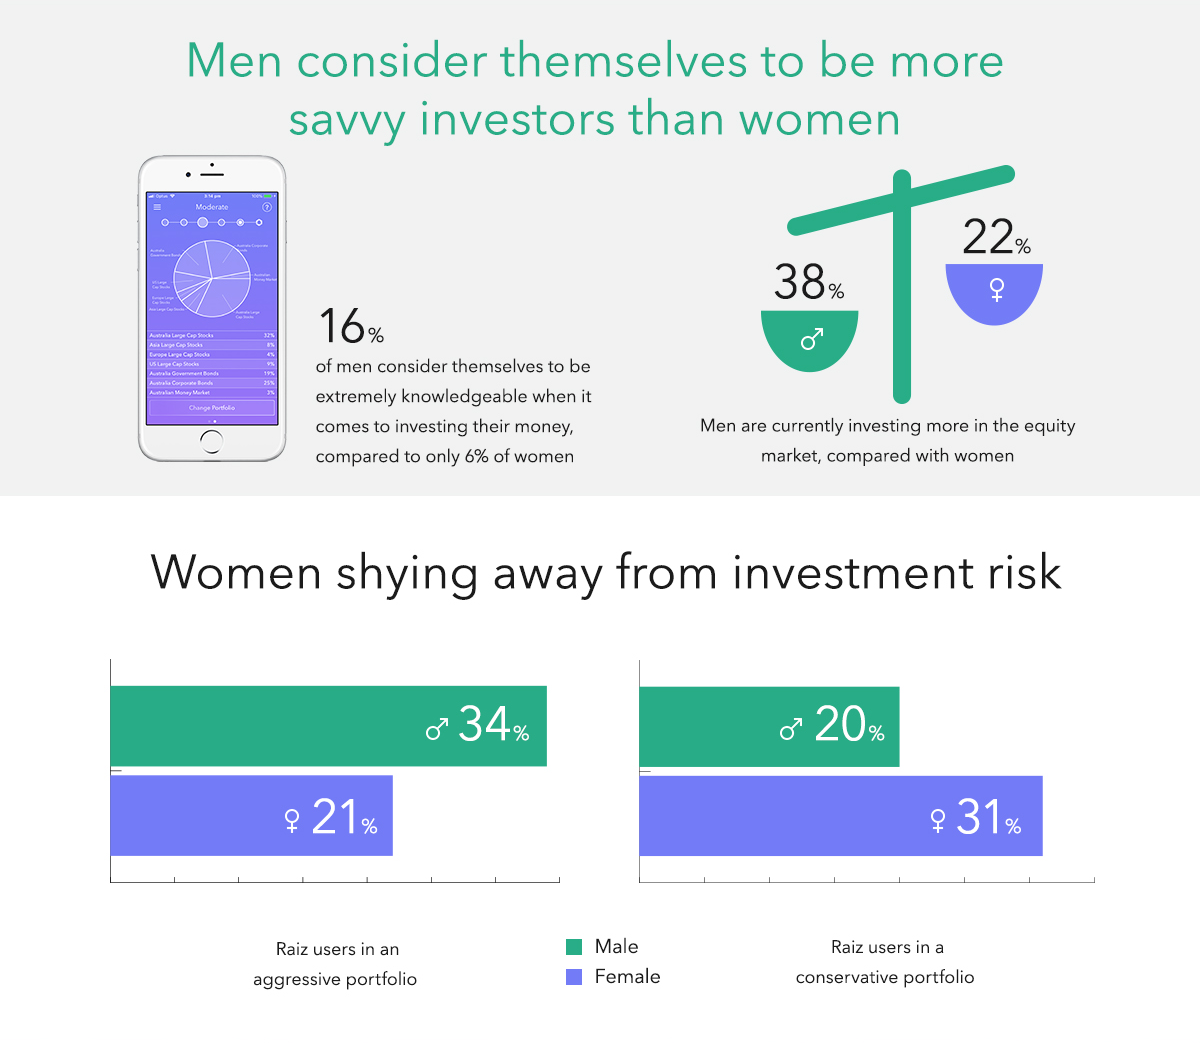 Men consider themselves to be more savvy investors than women